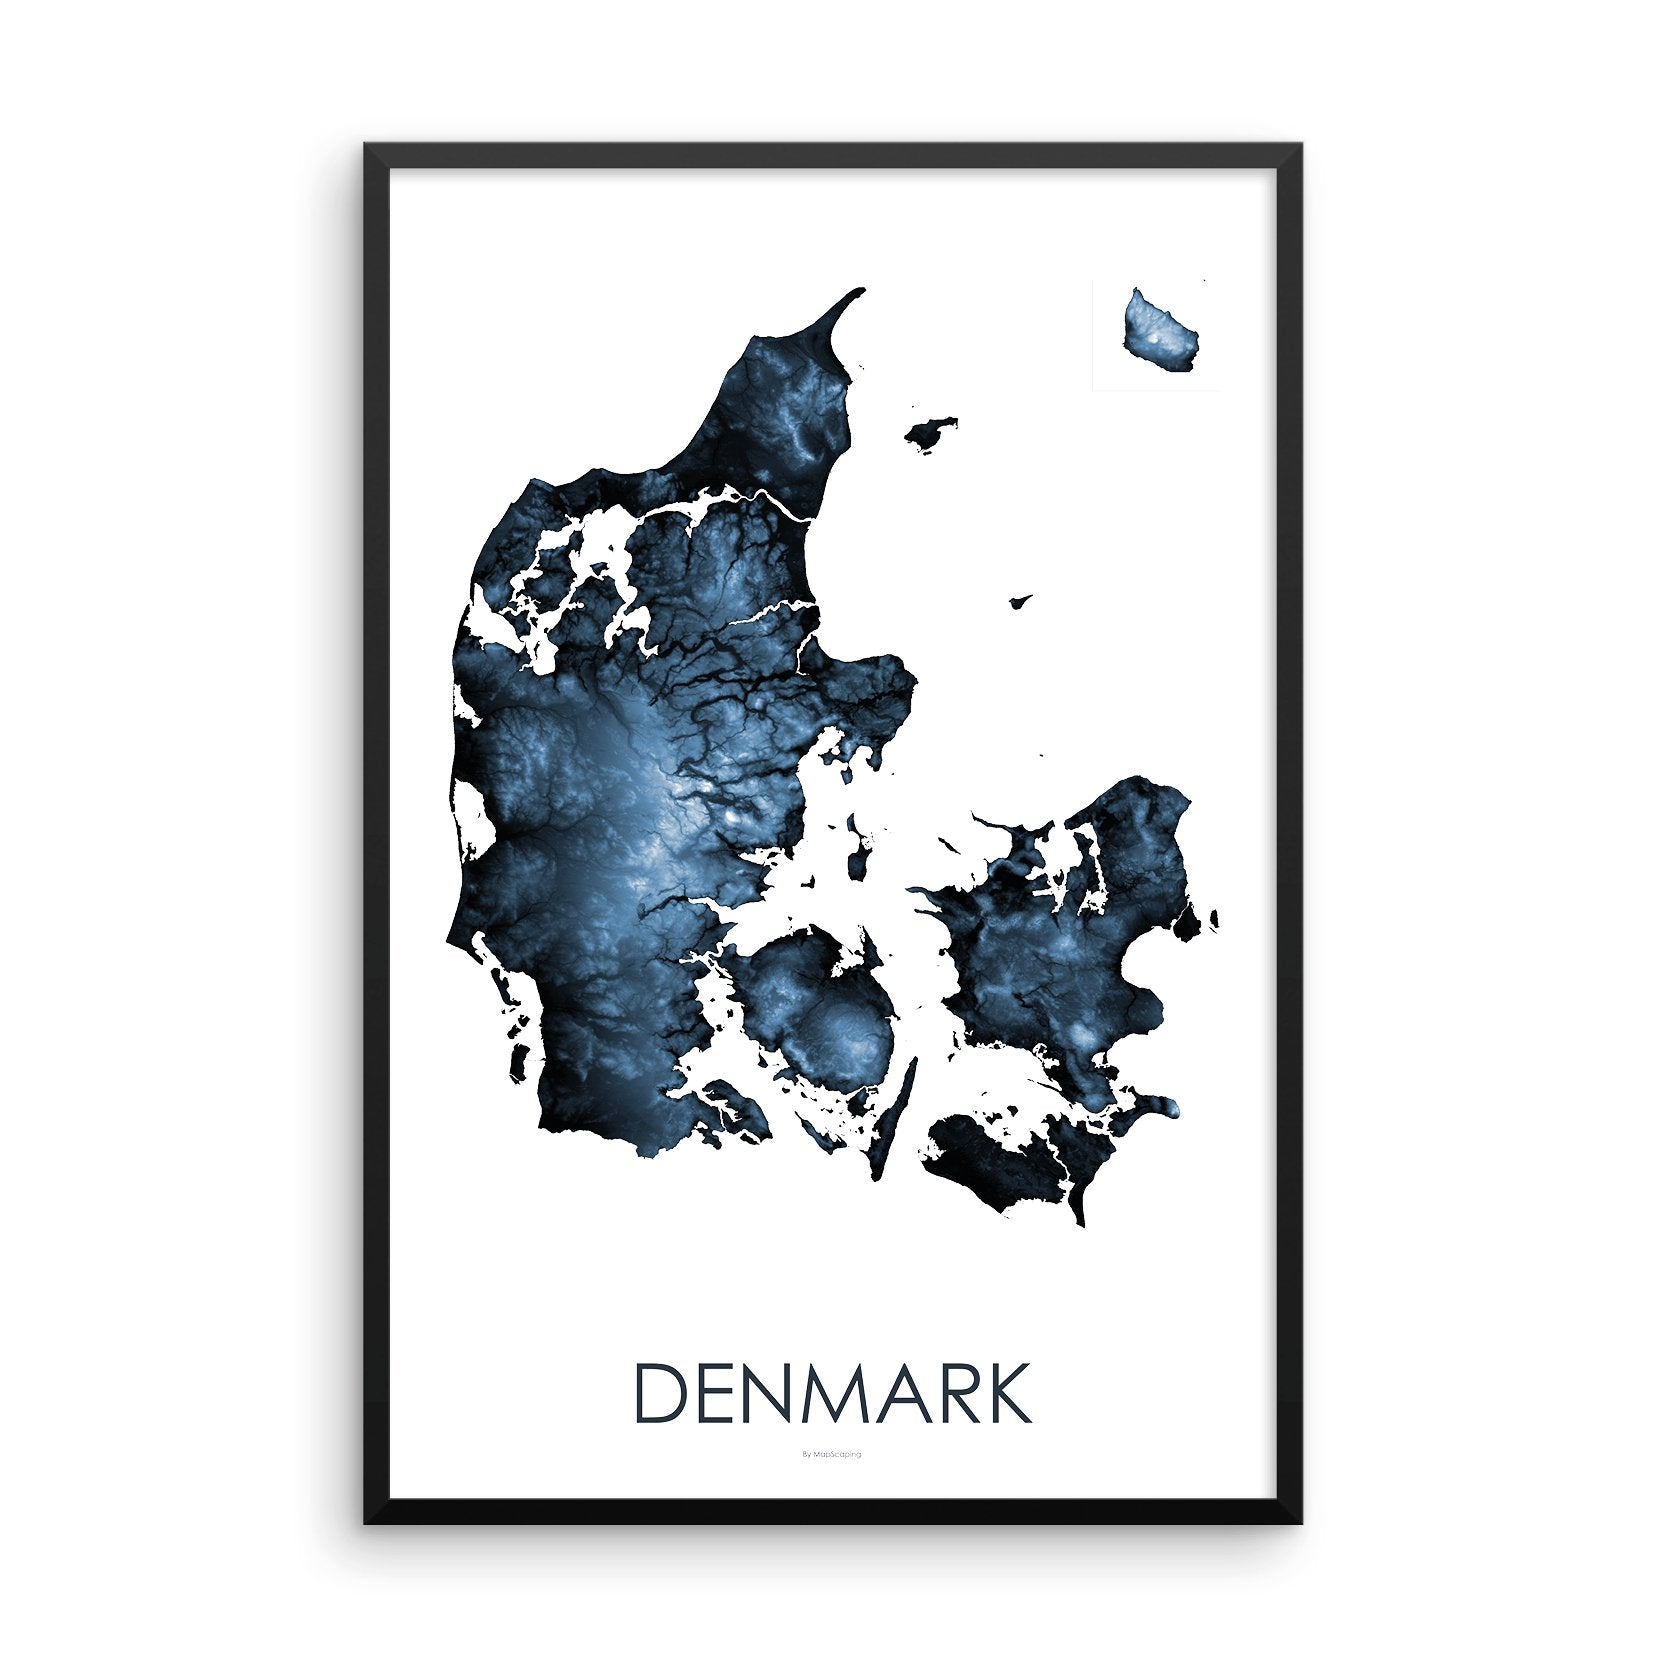 Framed blue poster map of Denmark and the danish islands, detailed map print showing the mountains of Denmark's landscape.